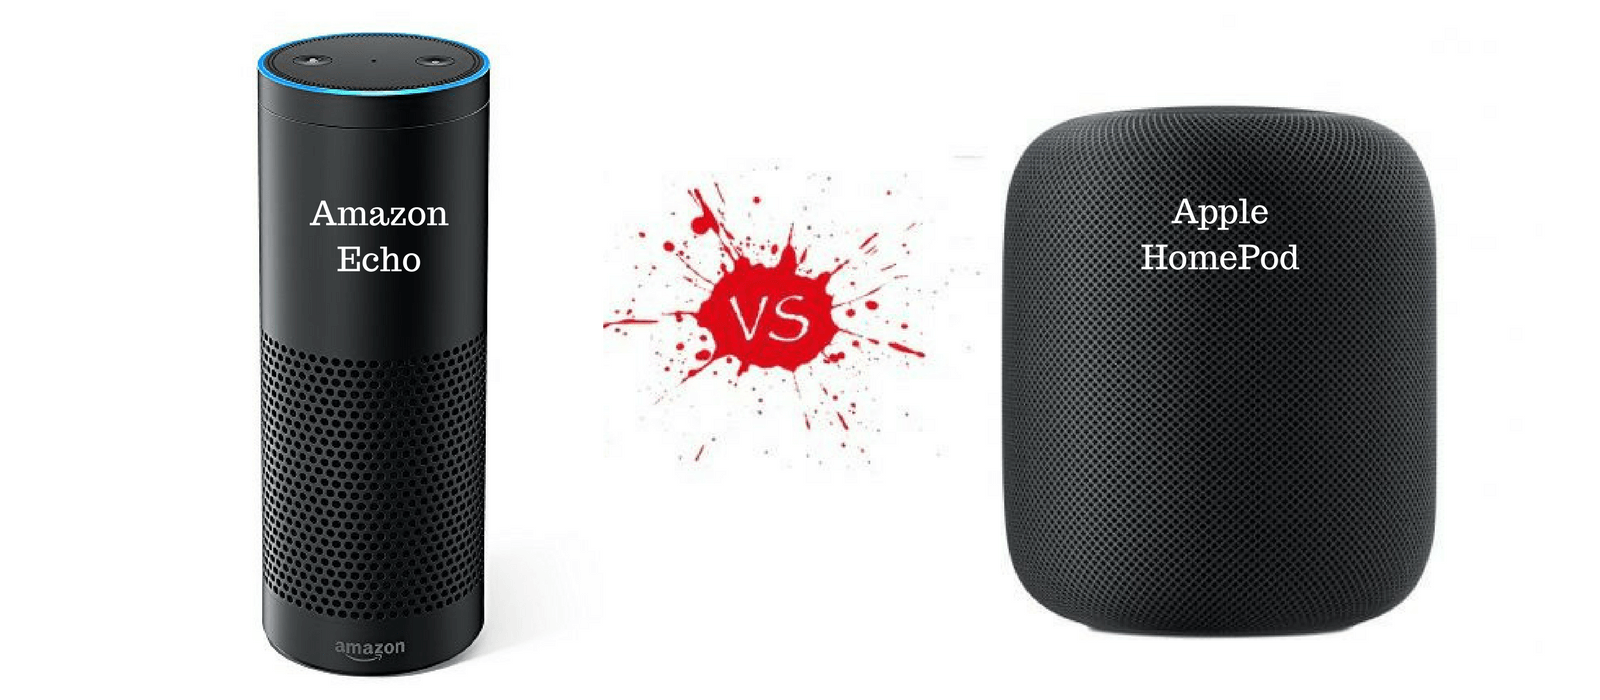 Apple HomePod vs Amazon Echo : Who's gonna lead voice enabled technology?